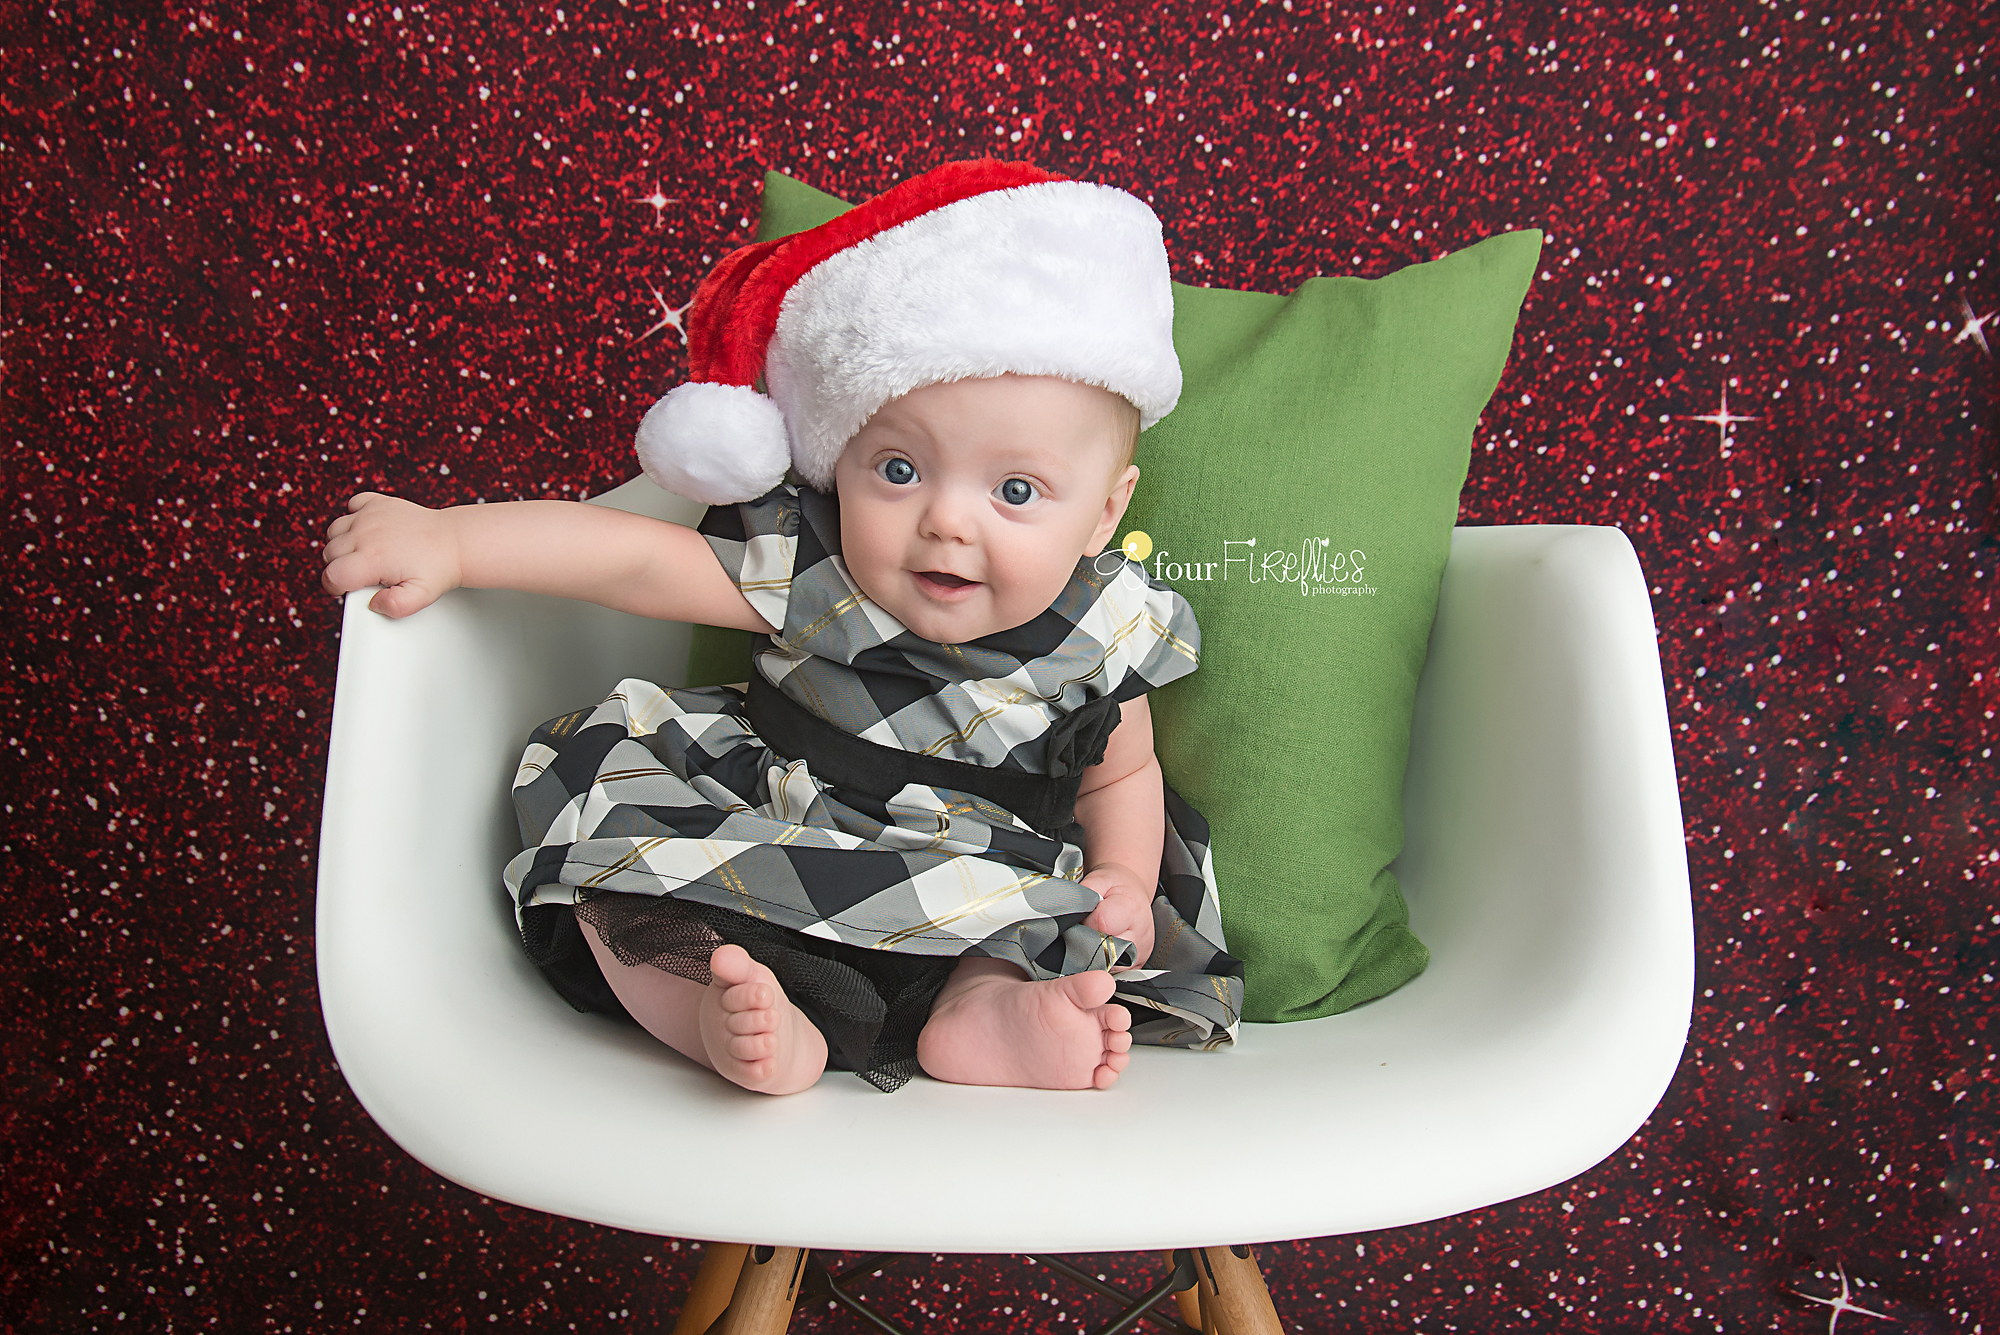 st-louis-baby-photographer-christmas-baby-in-plaid-dress-and-santa-hat-on-white-chair-with-green-pillow-and-red-glitter-backdrop.jpg